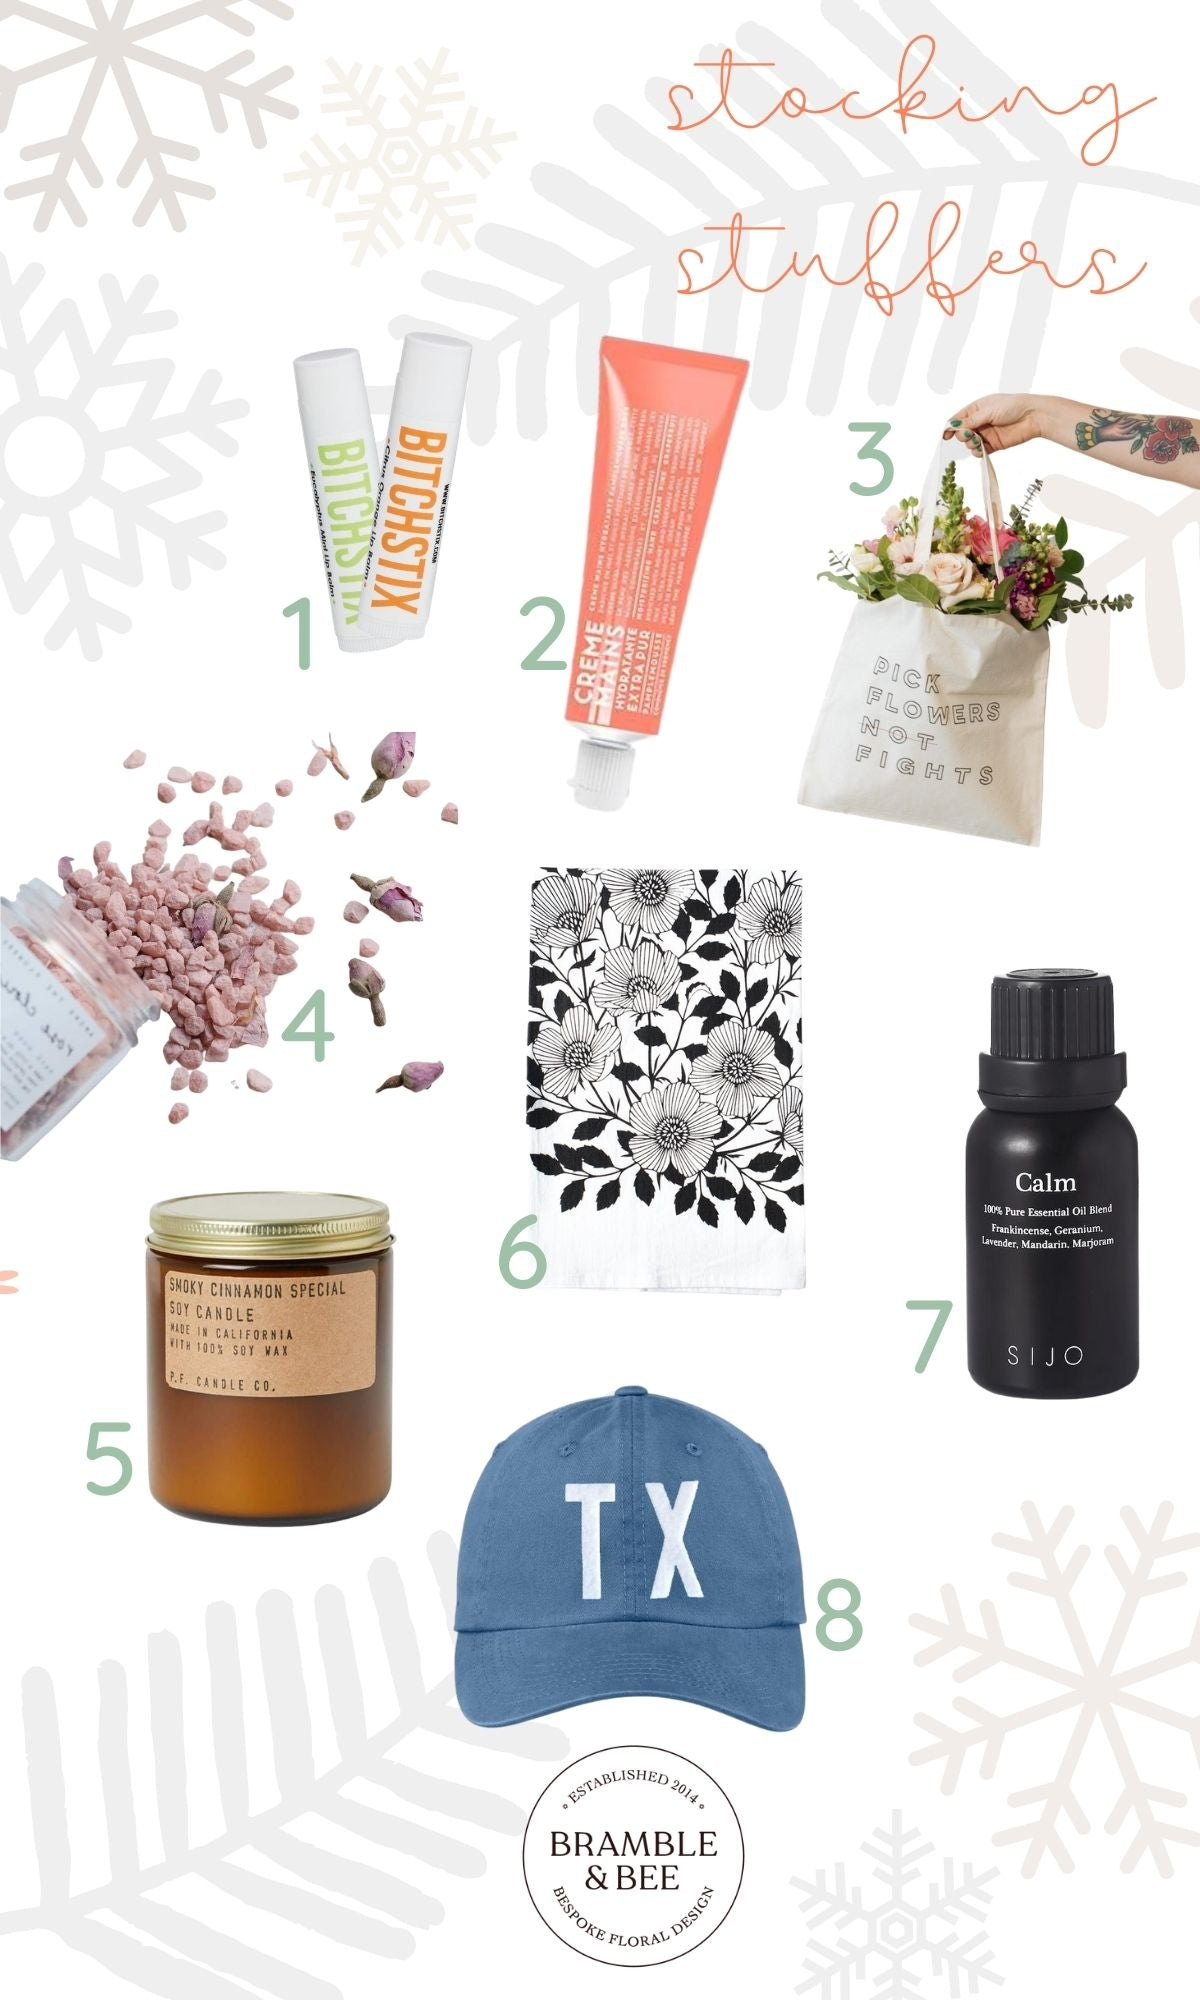 Bramble & Bee Holiday Gift Guide - Stocking Stuffers